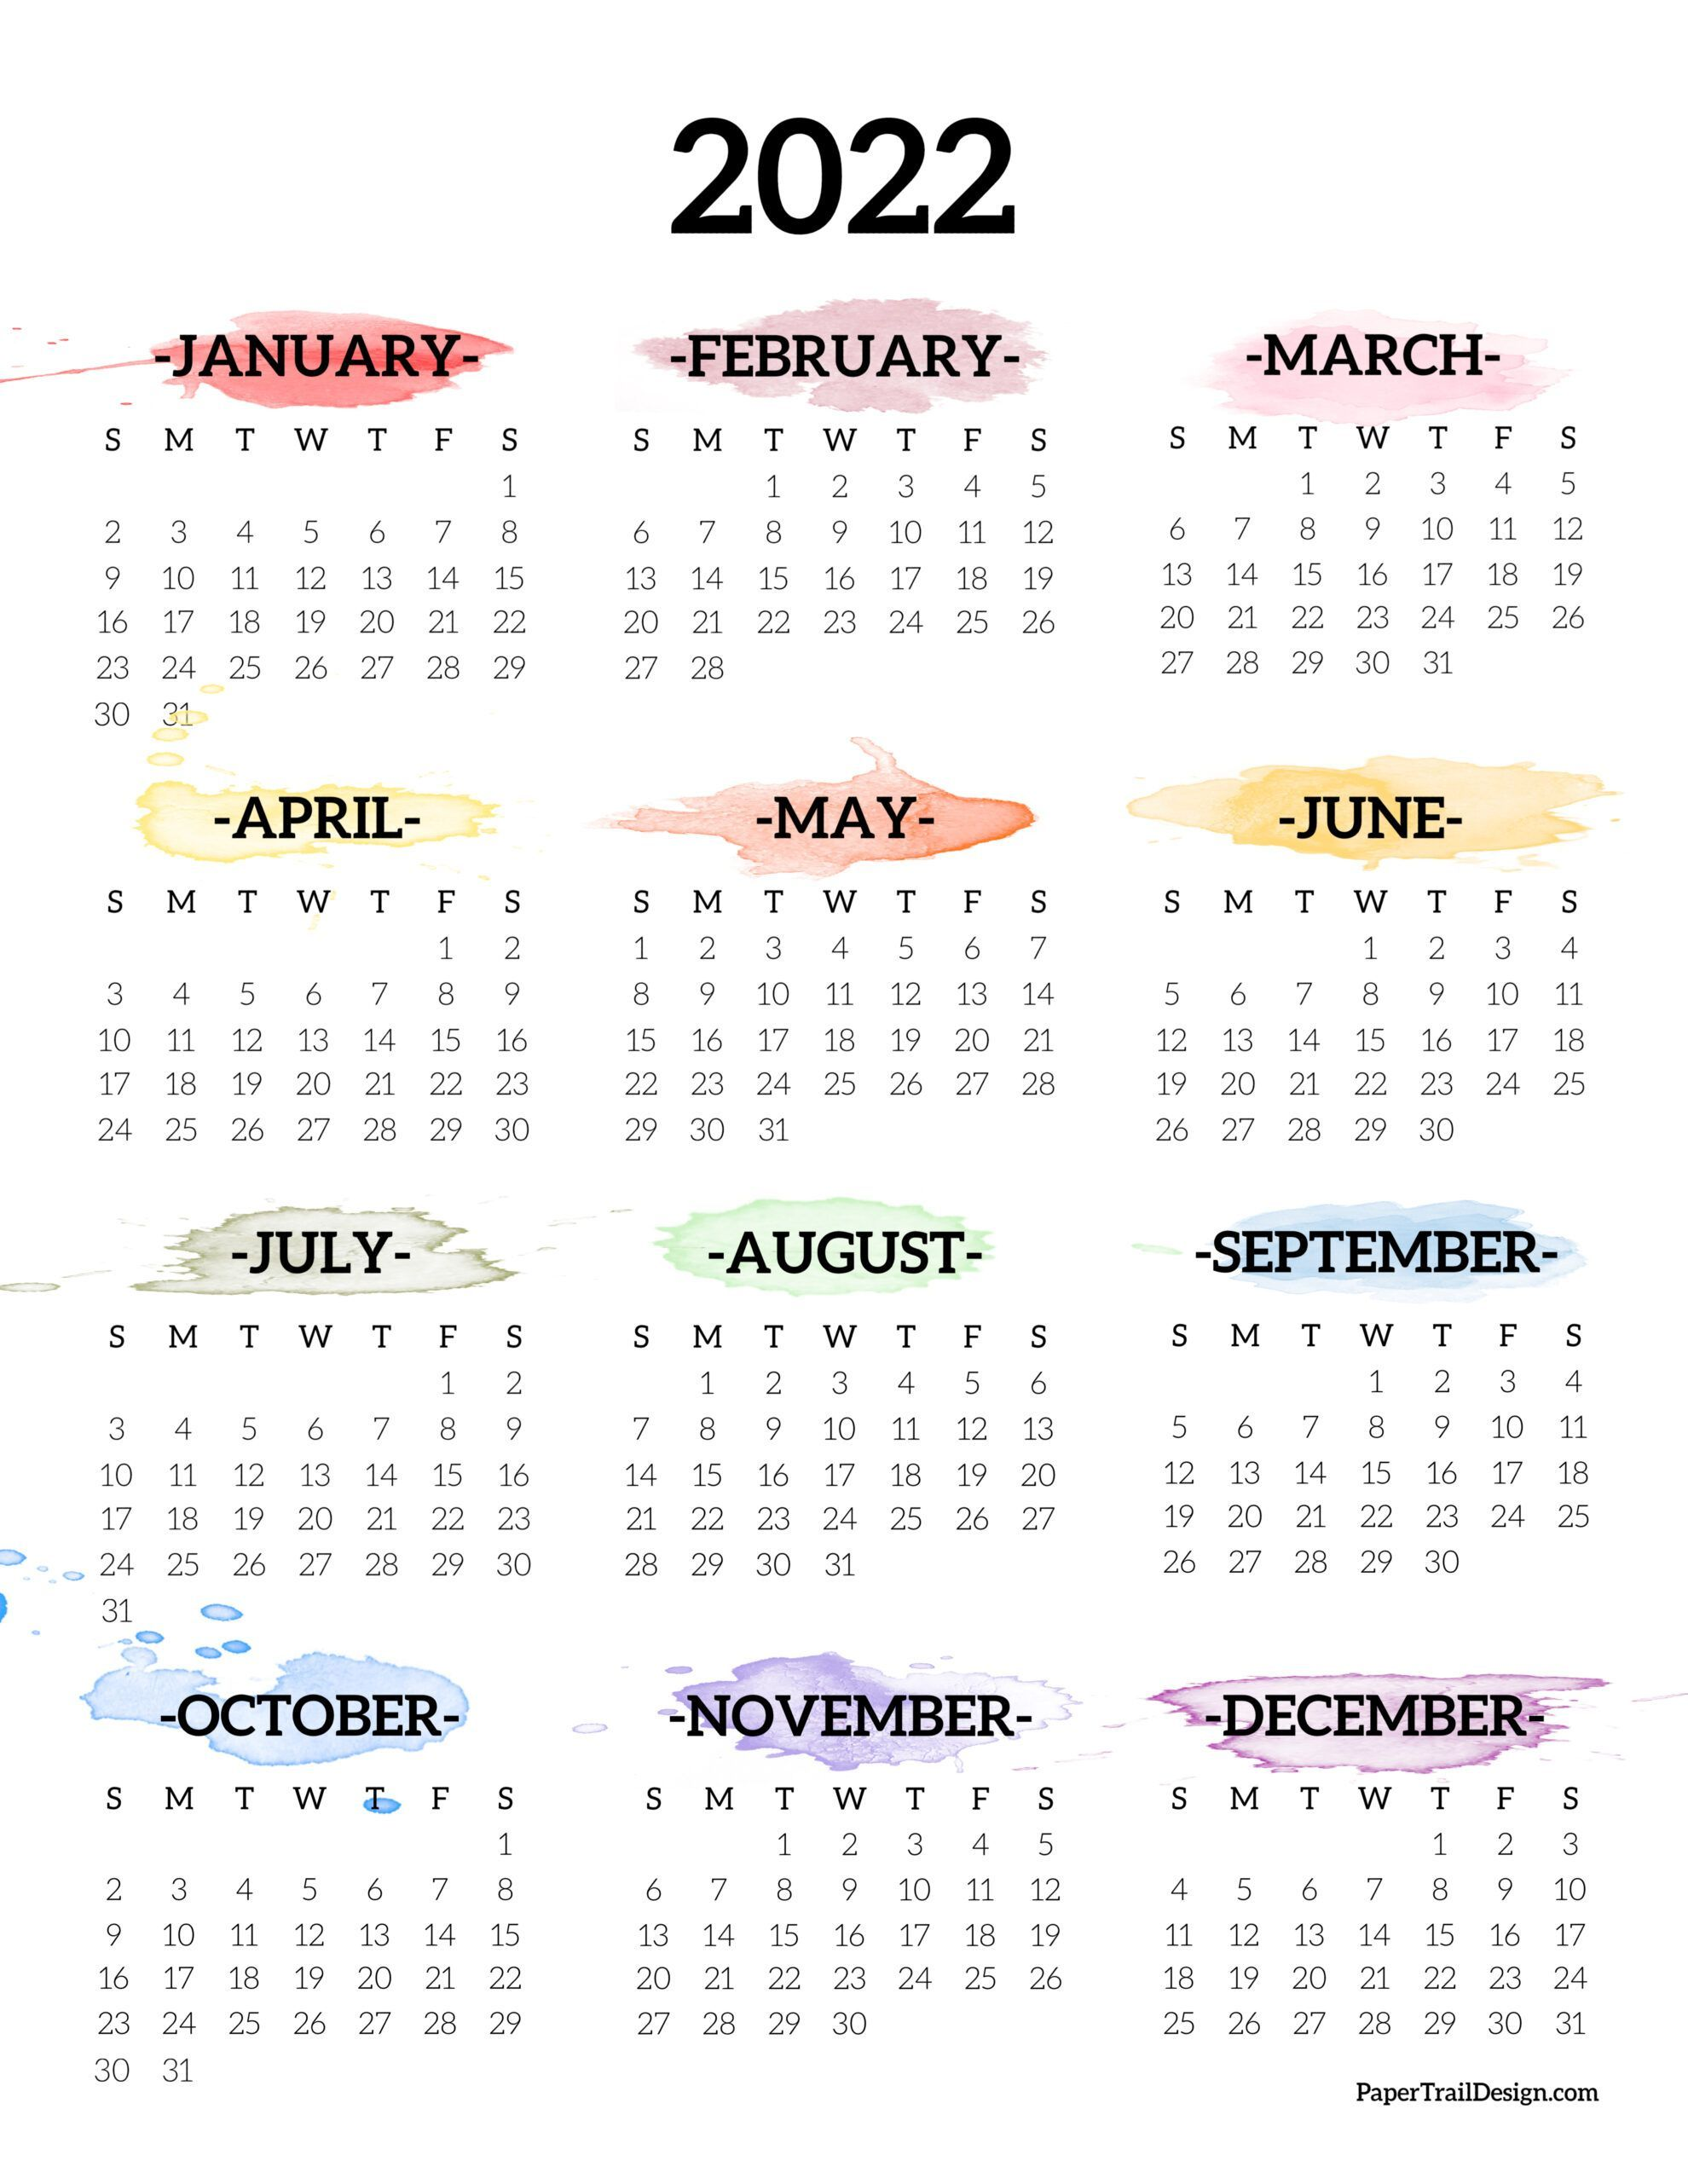 Calendrier Trails 2022 2022 One Page Calendar Printable   Watercolor | Paper Trail Design